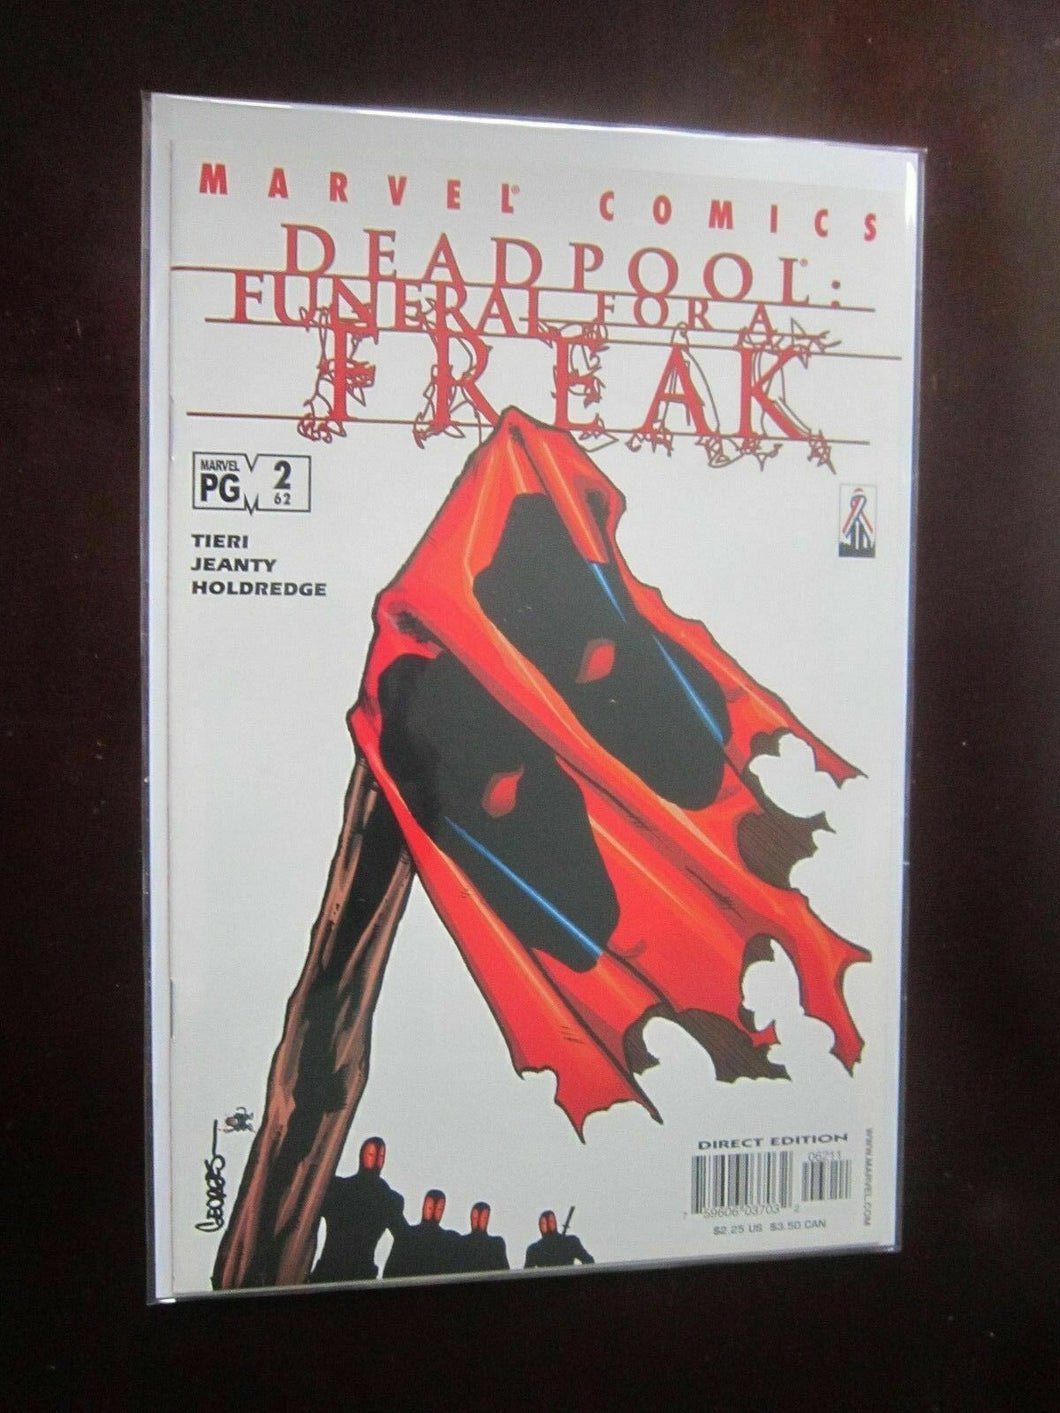 Deadpool Funeral For a Freak (1st Series)#62 - NM+ (2002)